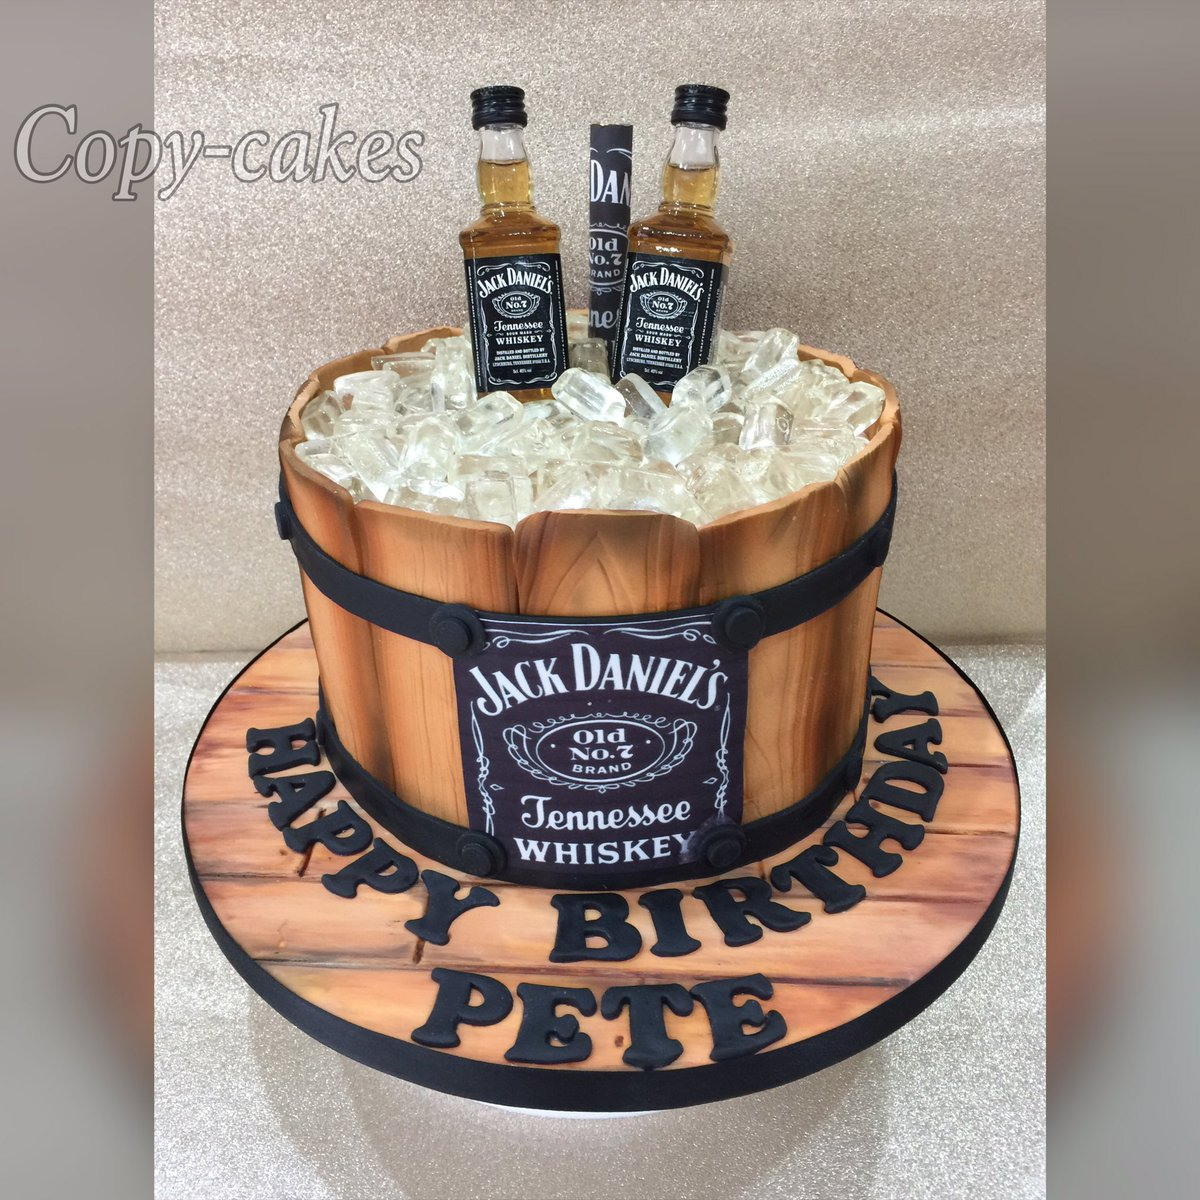 Wendy Brookes Cakedesign On Twitter Jackdaniels Barrel Cake Dukinfield Cheshire Birthday